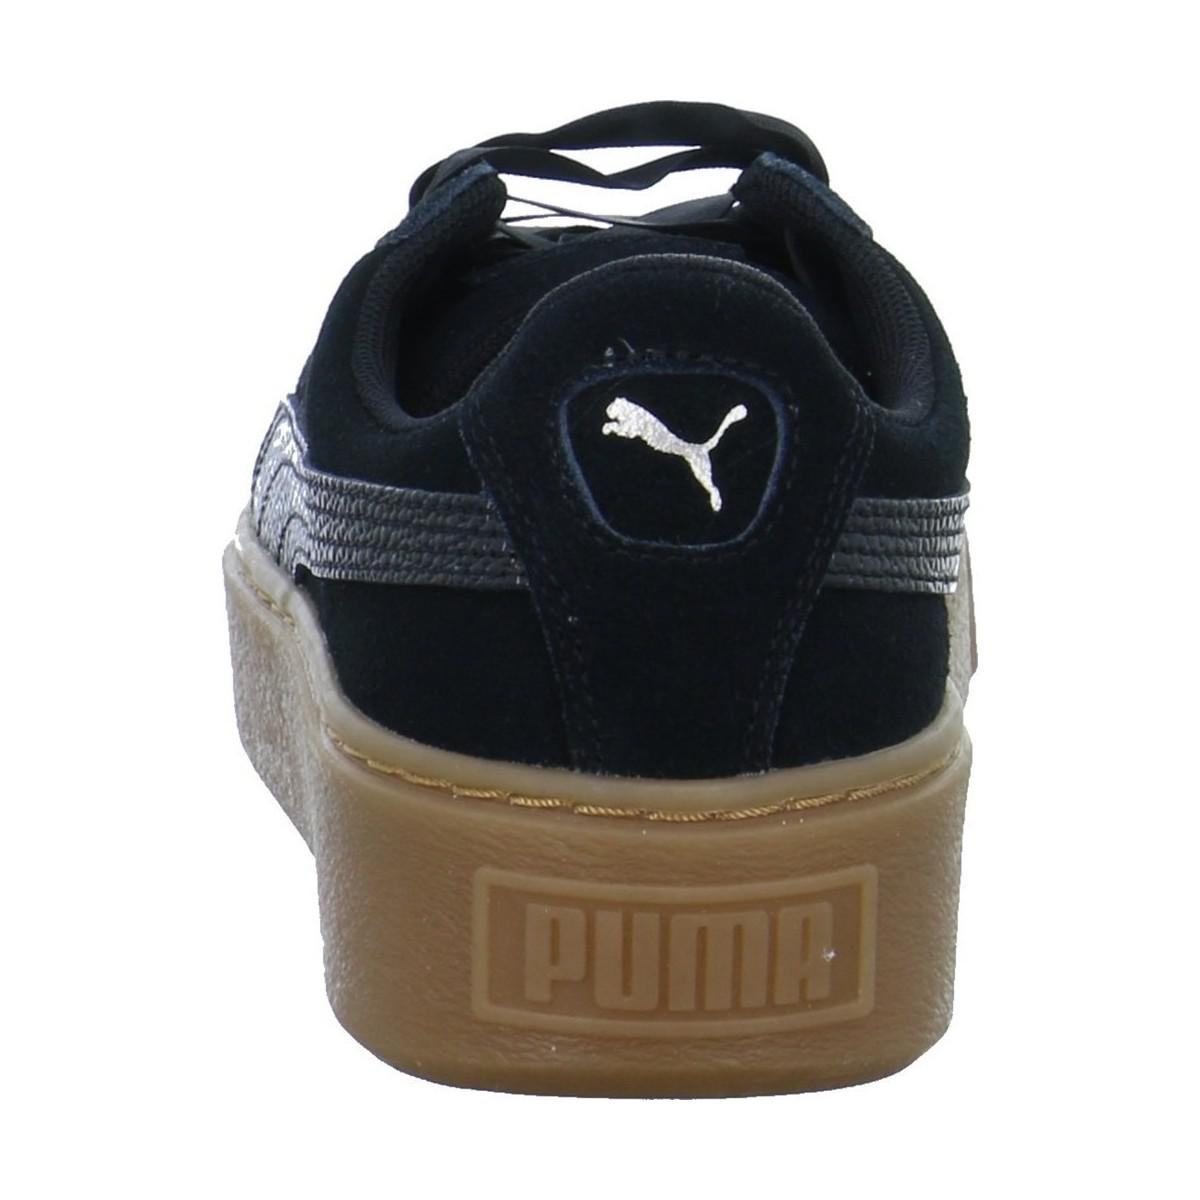 9e3e71545da5 PUMA - Suede Platform Bubble Wns Women s Shoes (trainers) In Black - Lyst.  View fullscreen